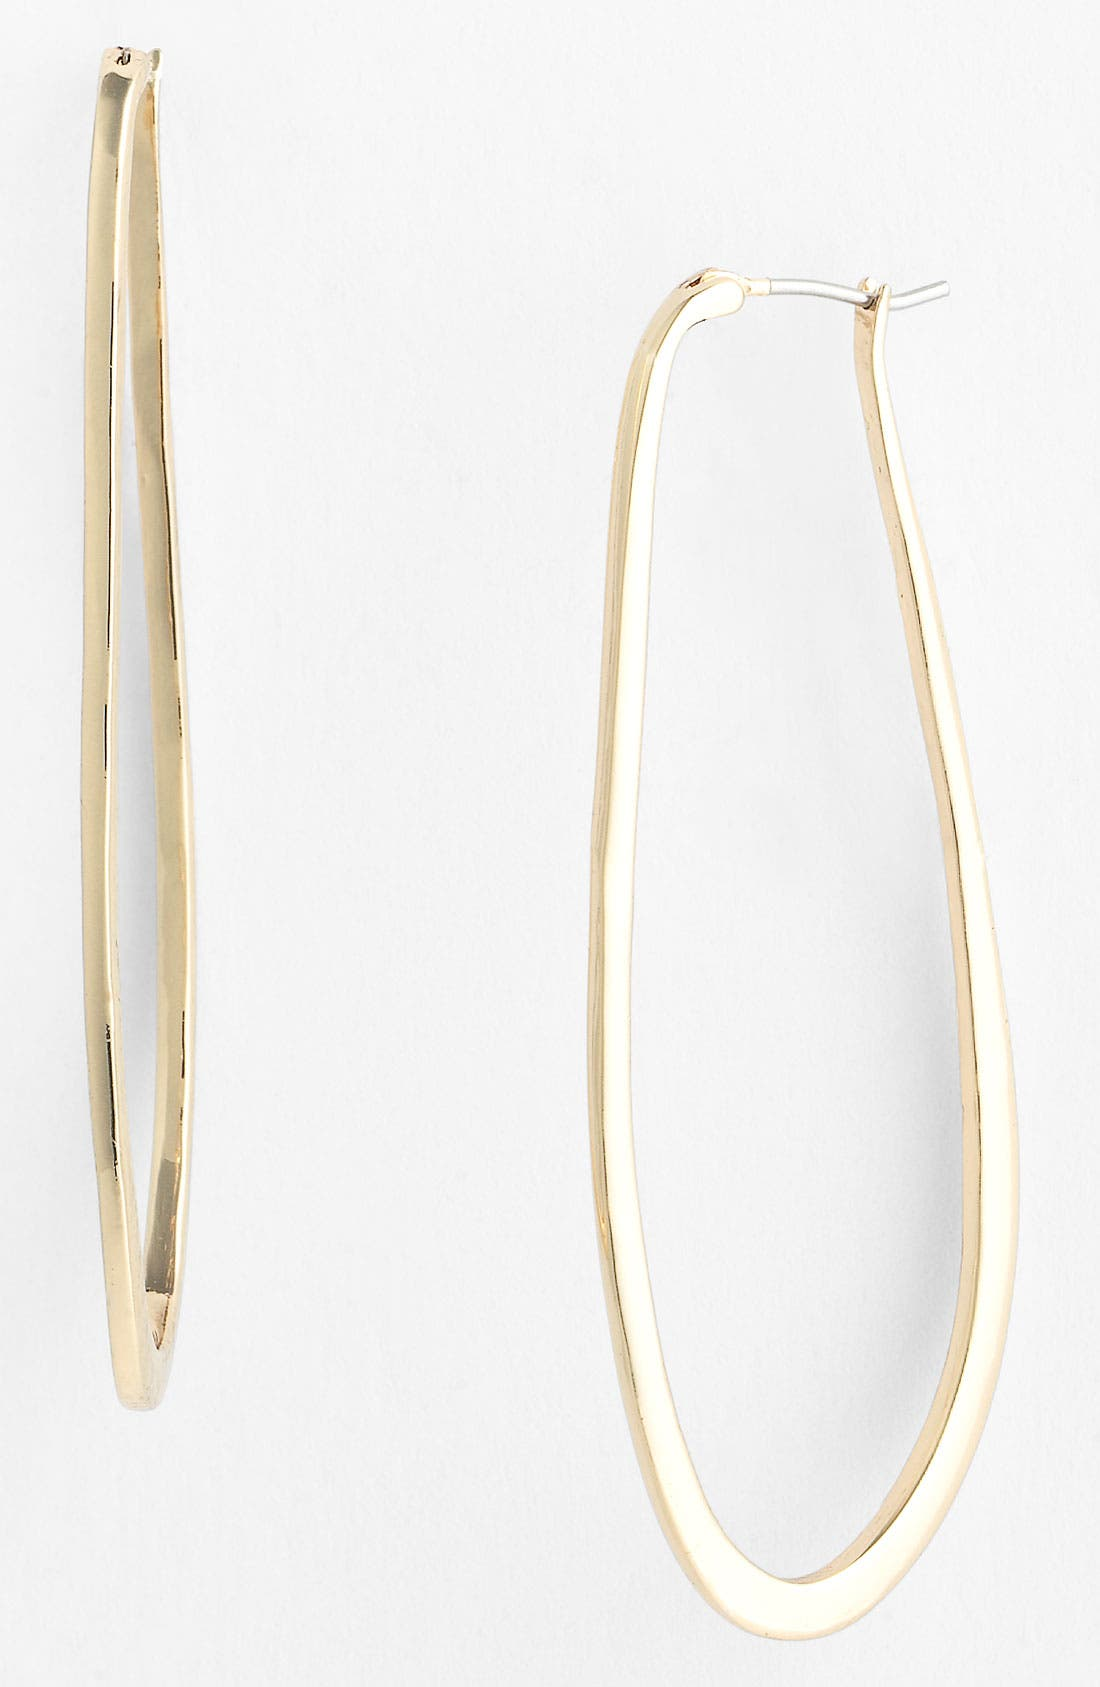 Alternate Image 1 Selected - Vince Camuto 'Basics' Elongated Hoop Earrings